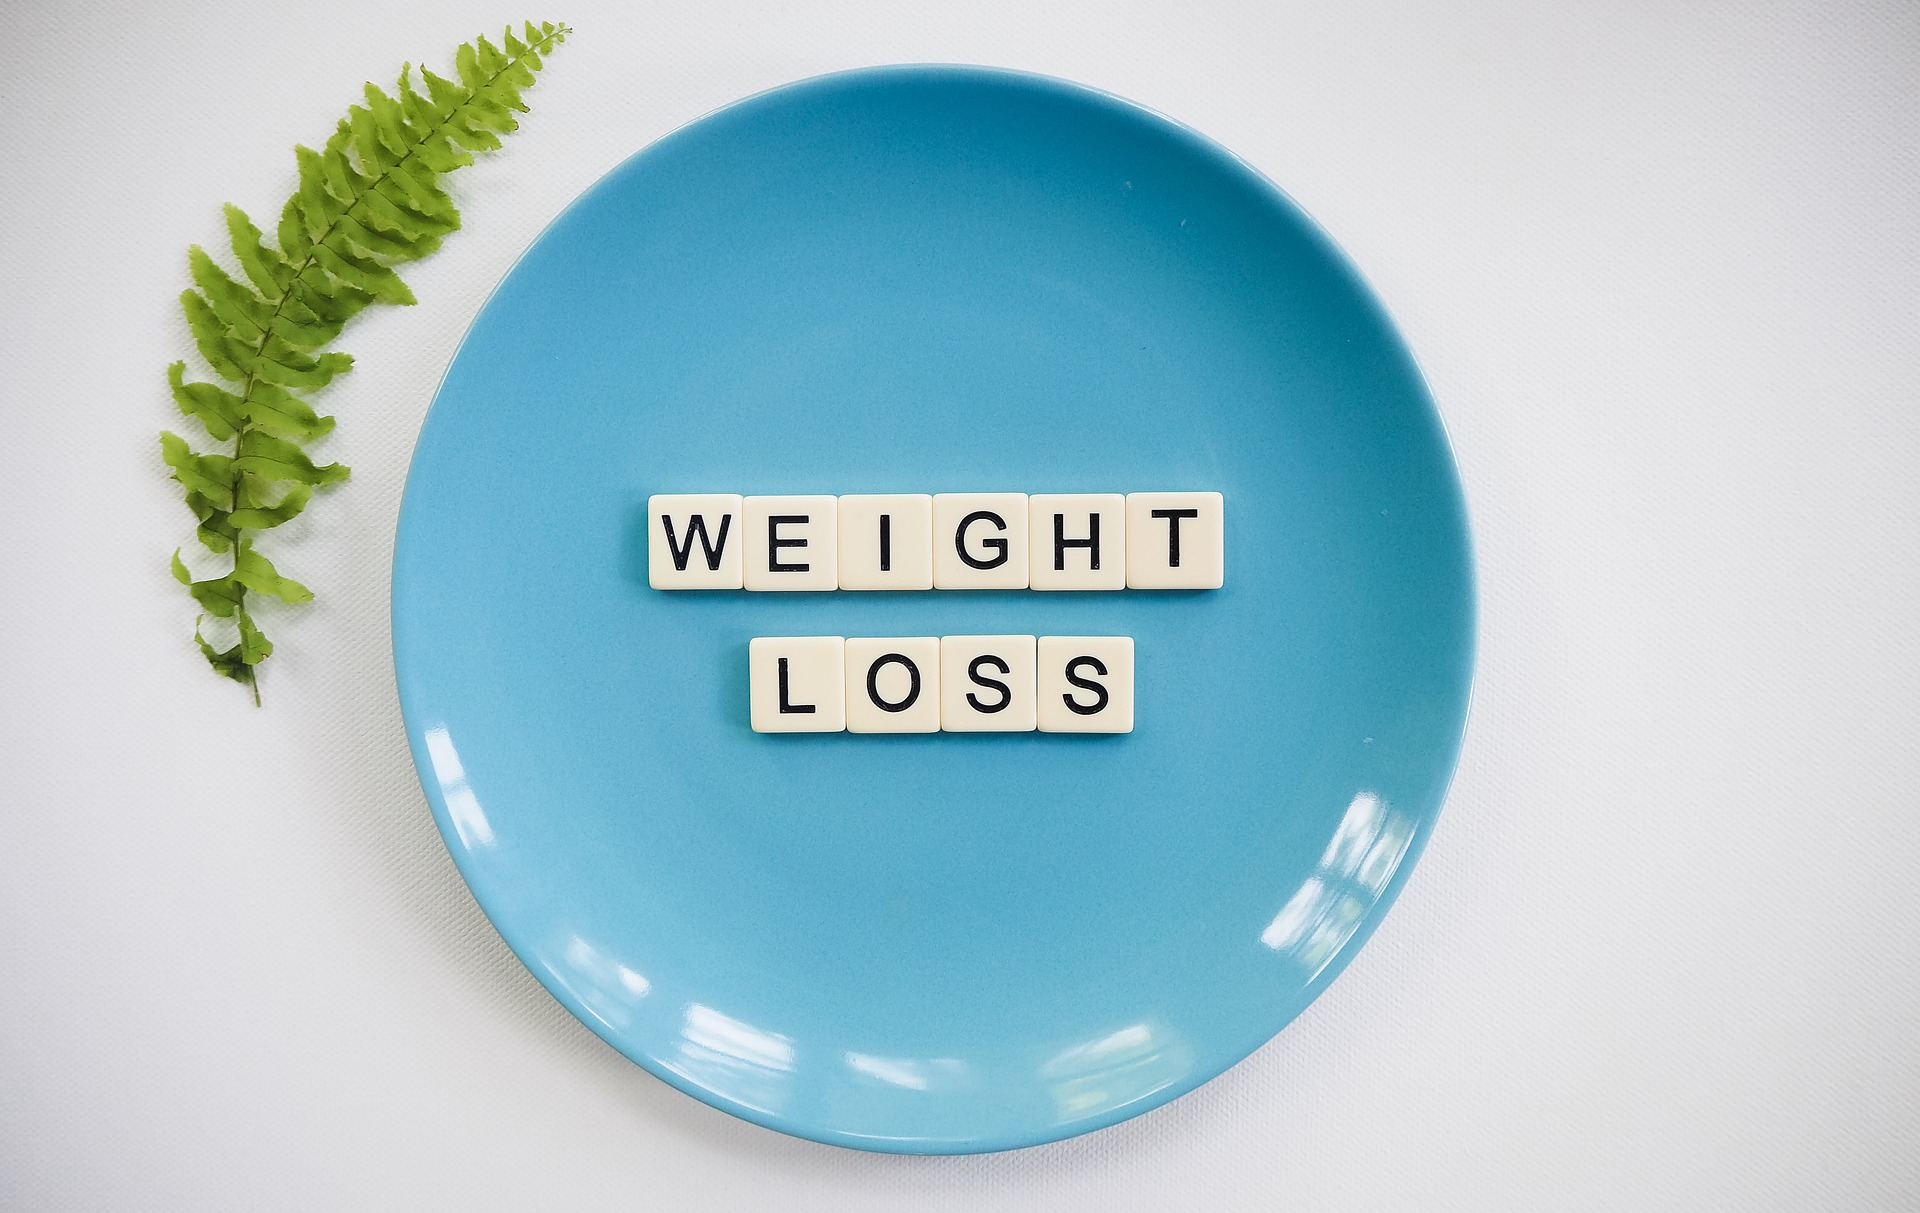 10 BIGGEST WEIGHT LOSS MISTAKES